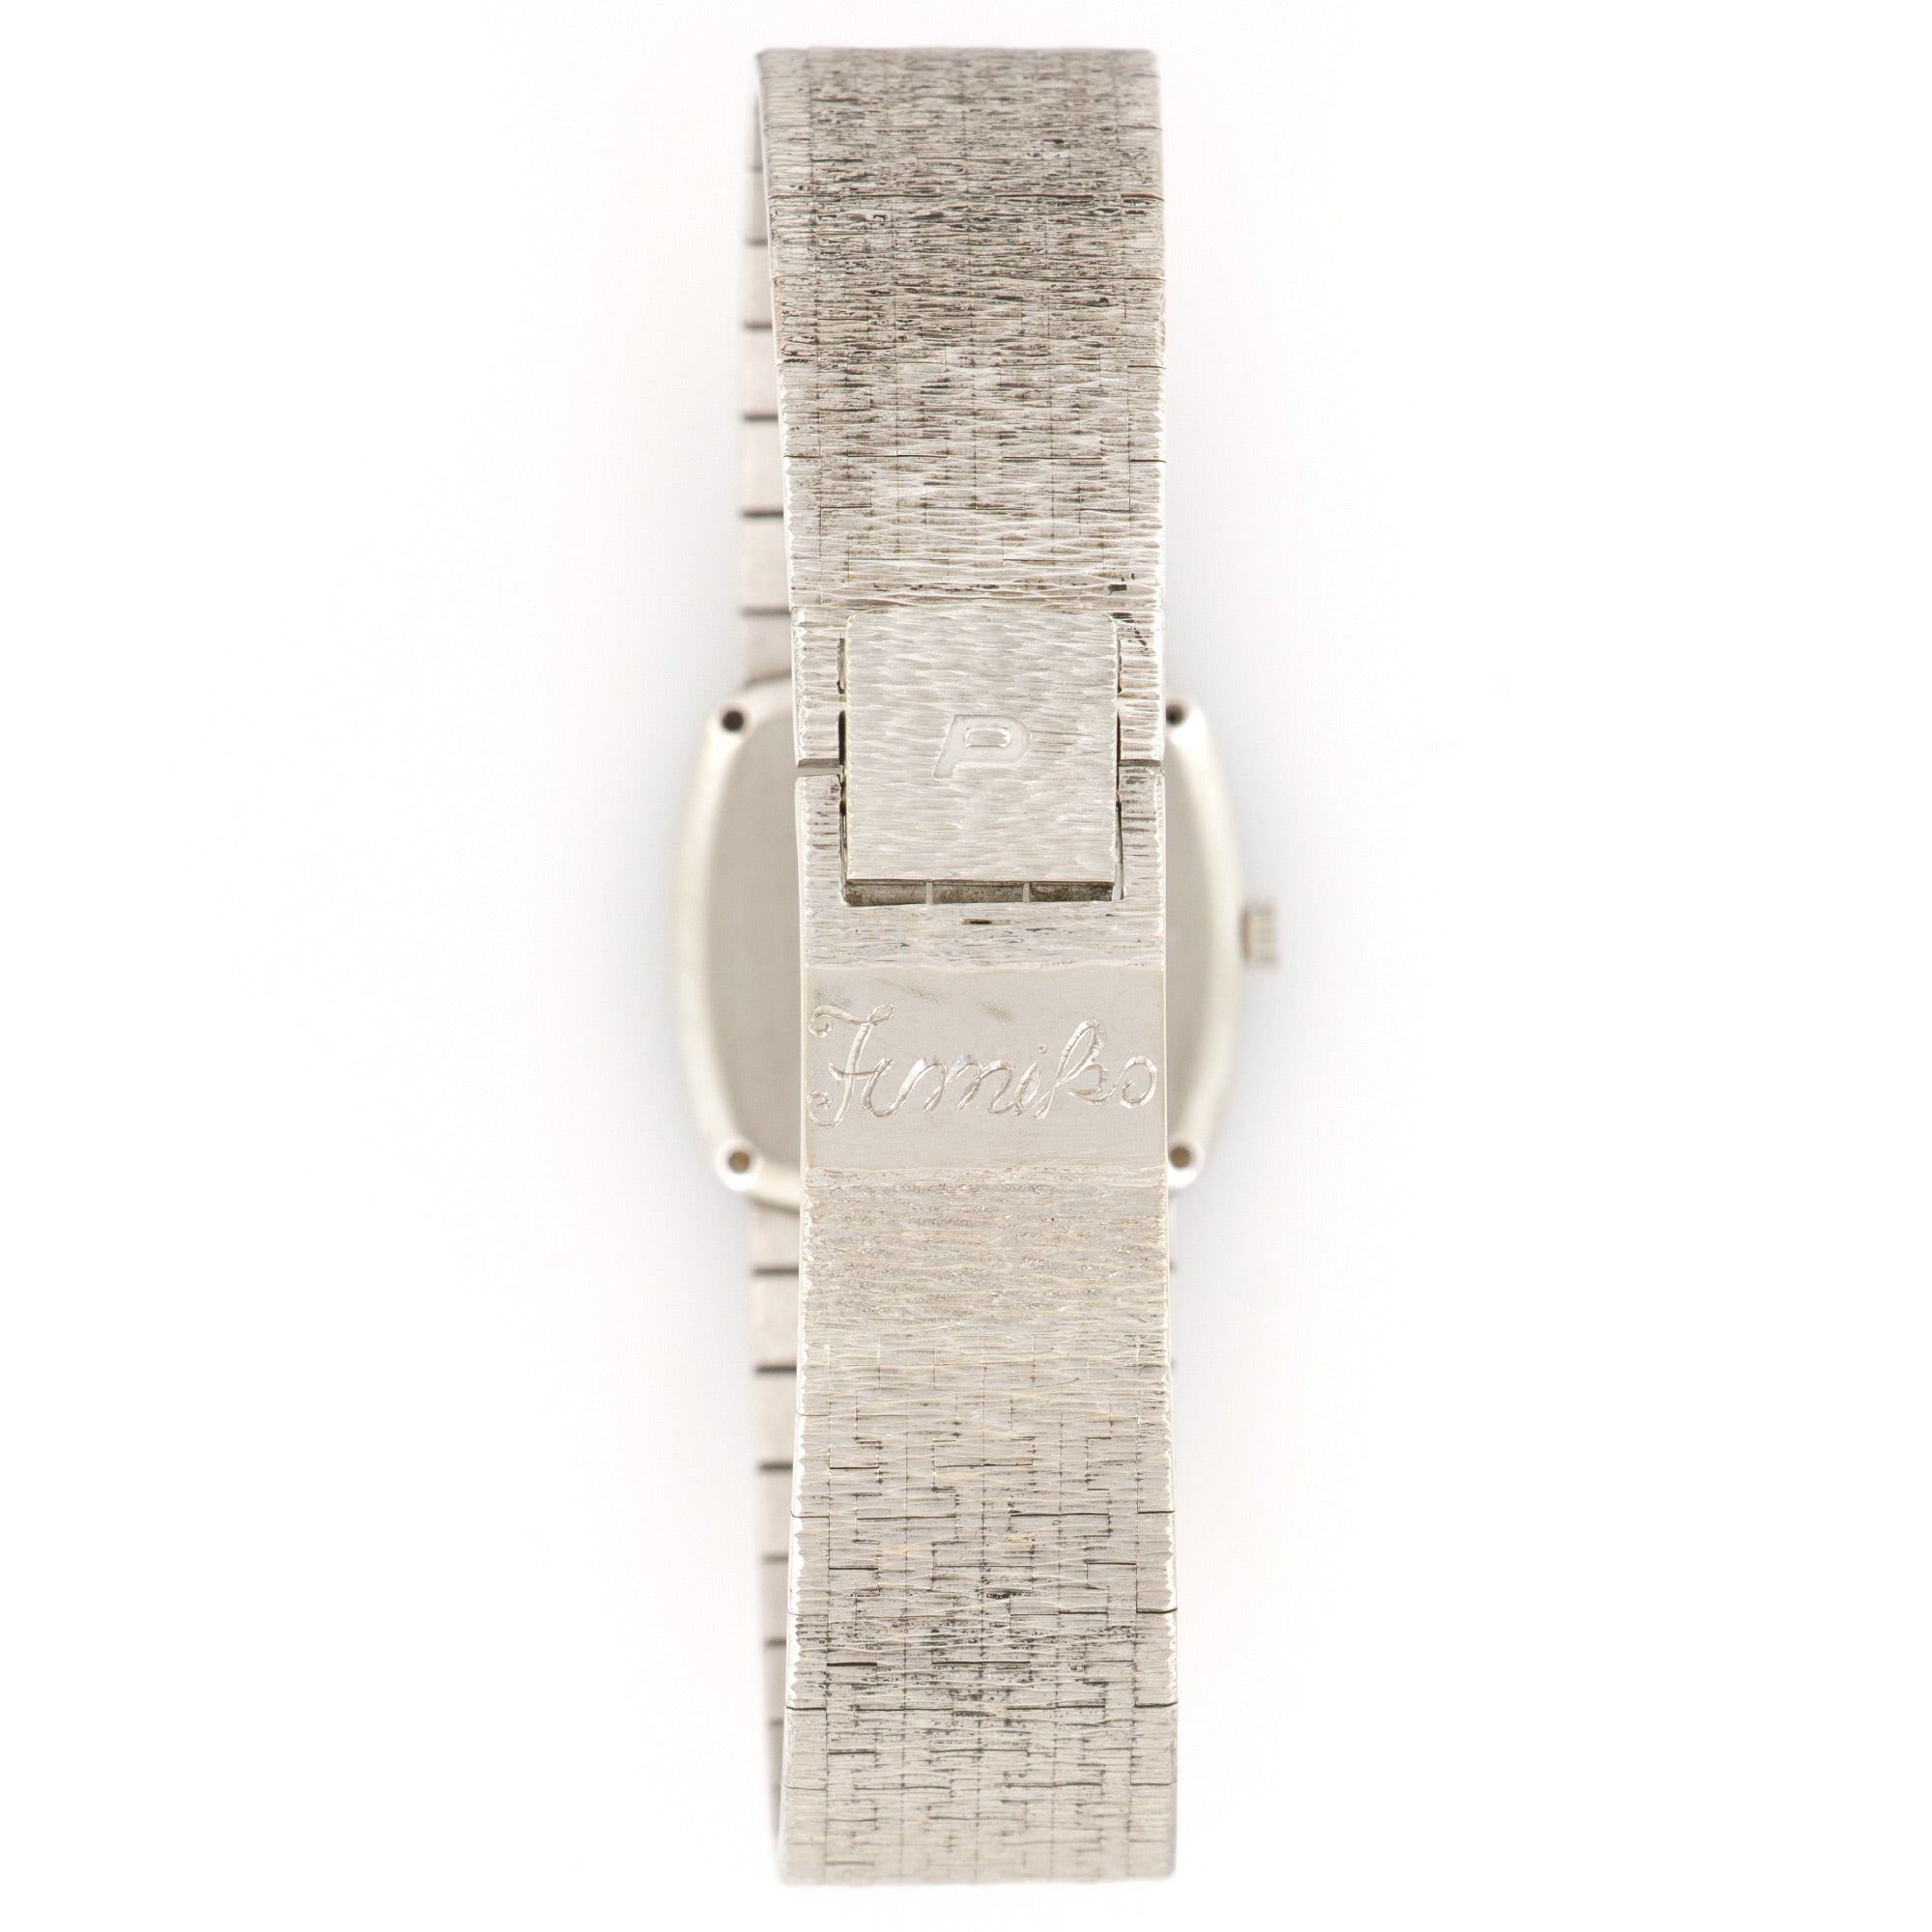 Piaget Vintage 9236 18k WG  Excellent Ladies 18k WG Original Silver Dial 24mm Manual 1970s White Gold Bracelet Leather Travel Case